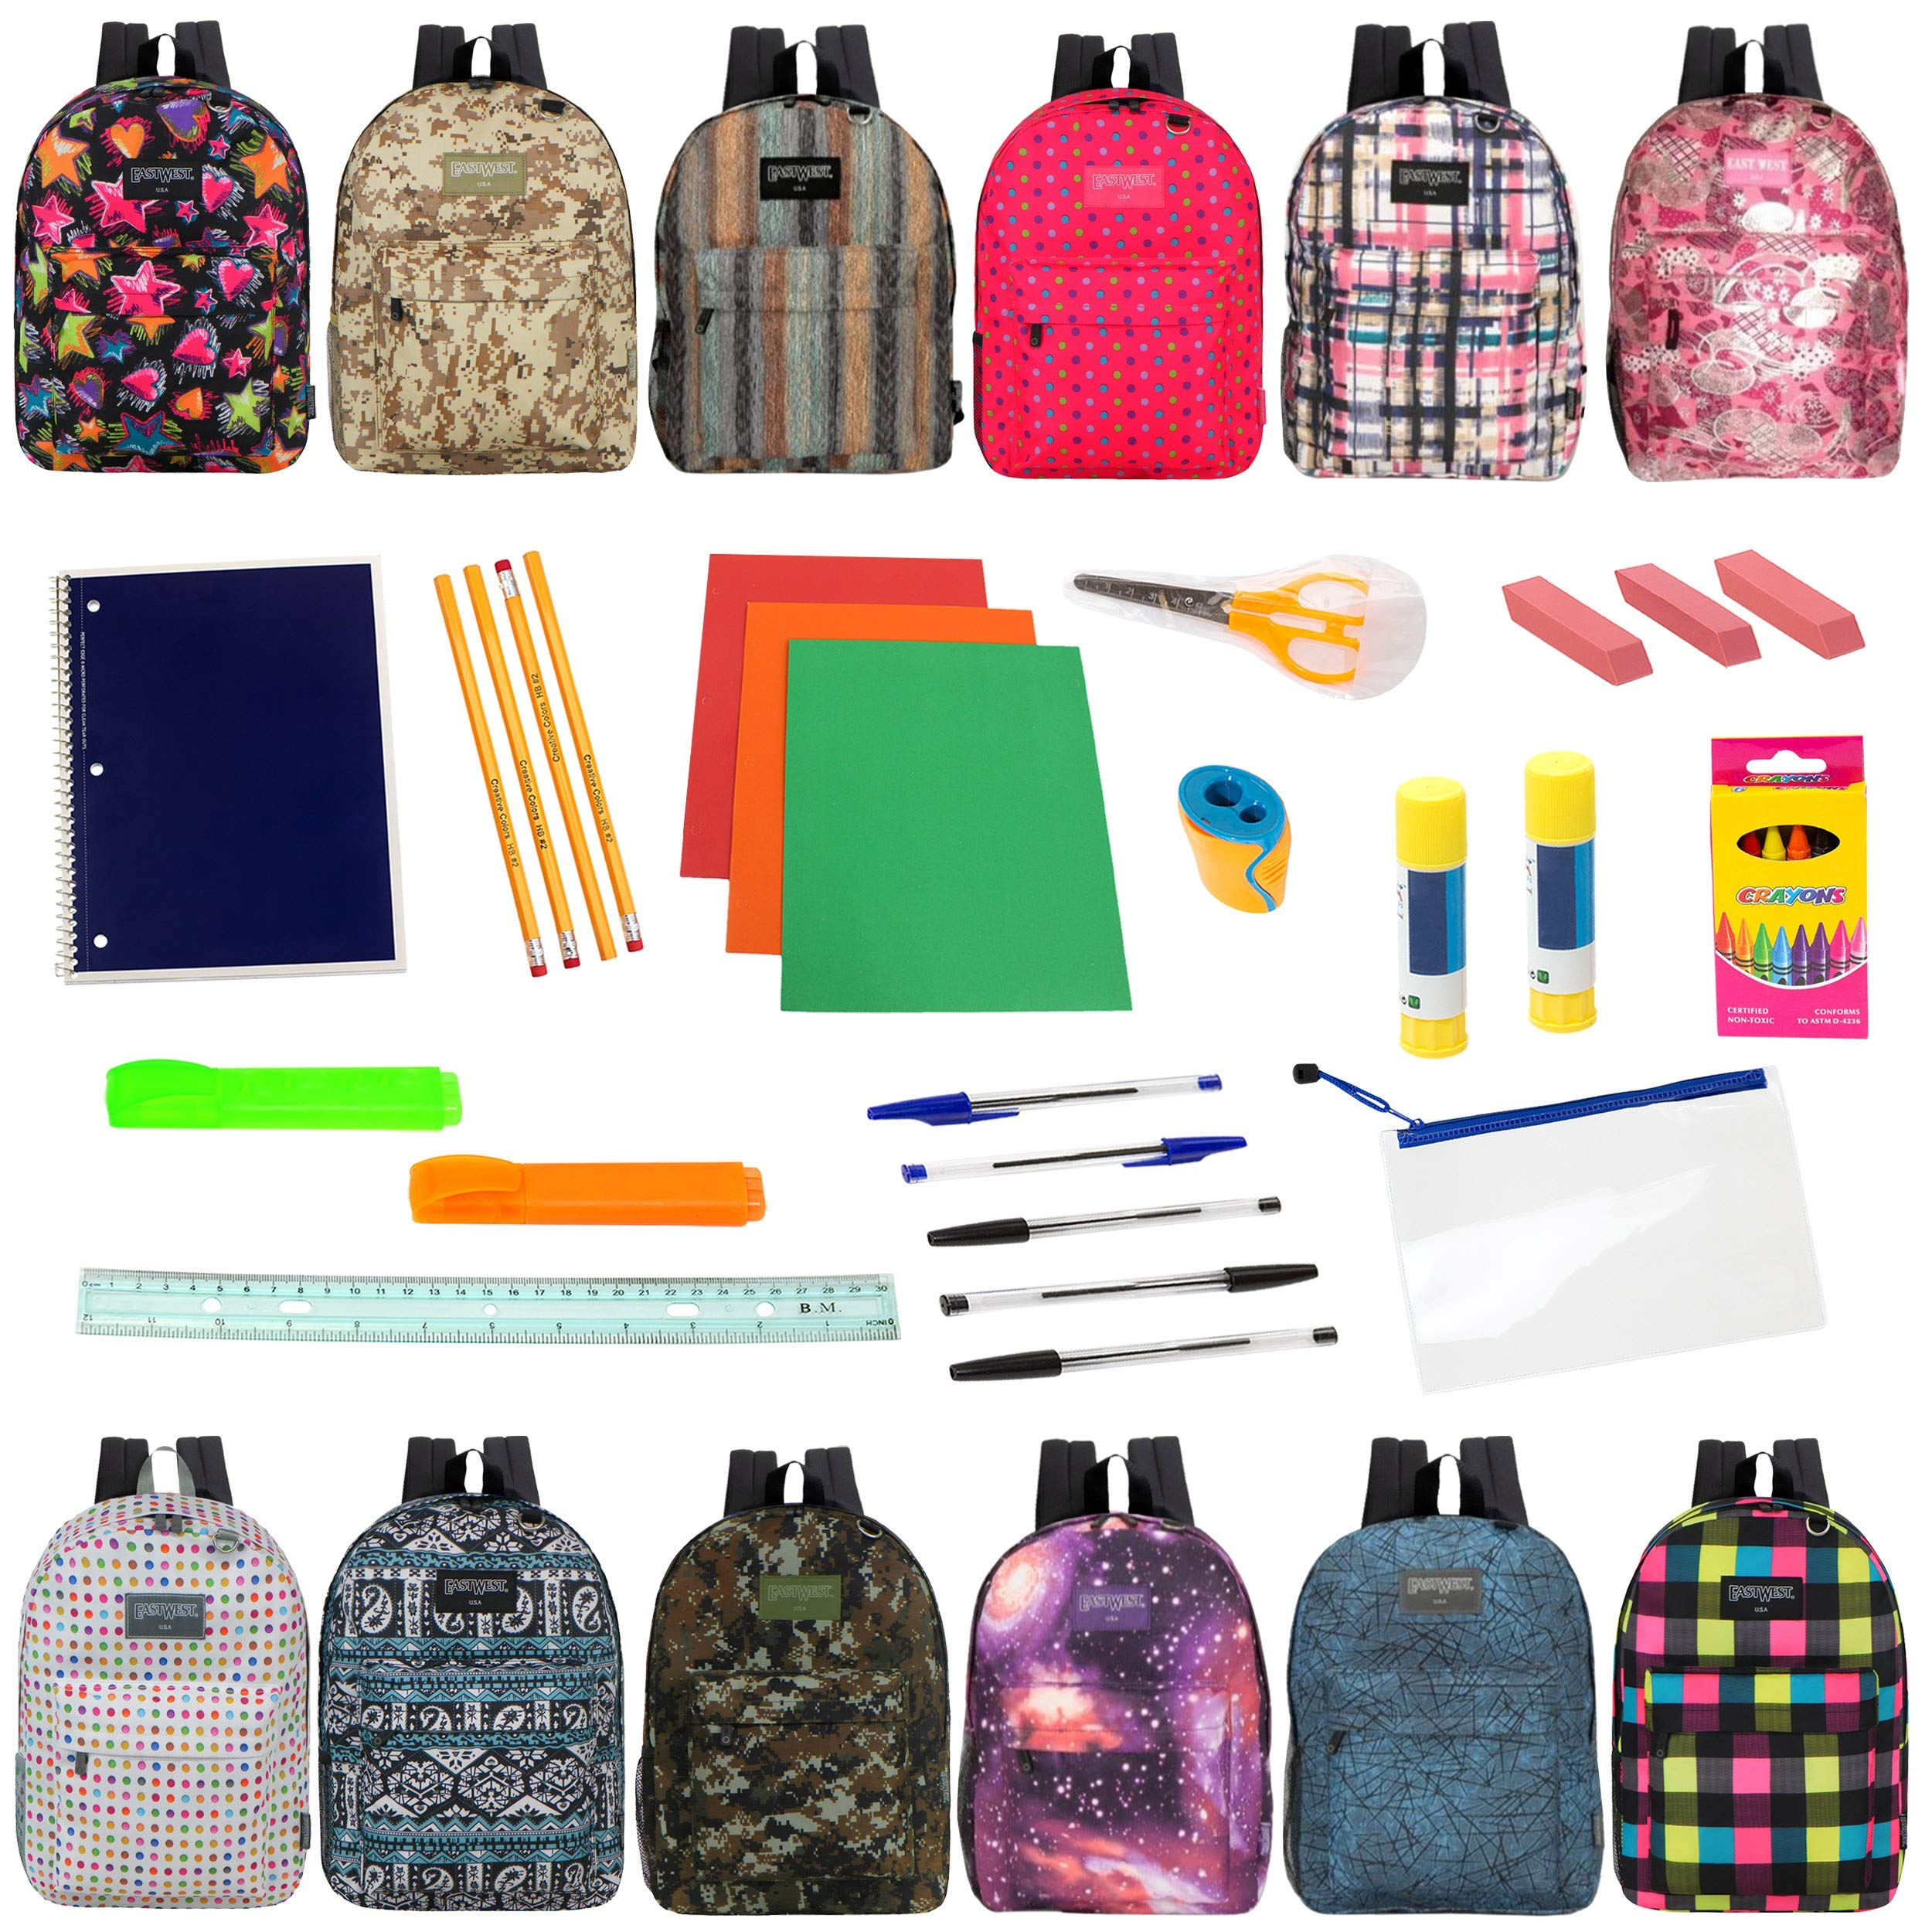 17'' Backpacks with 30 Piece School Supply Kit - Bulk Case of 12 Wholesale Backpacks and Kits in 8 to 12 Prints by Moda West